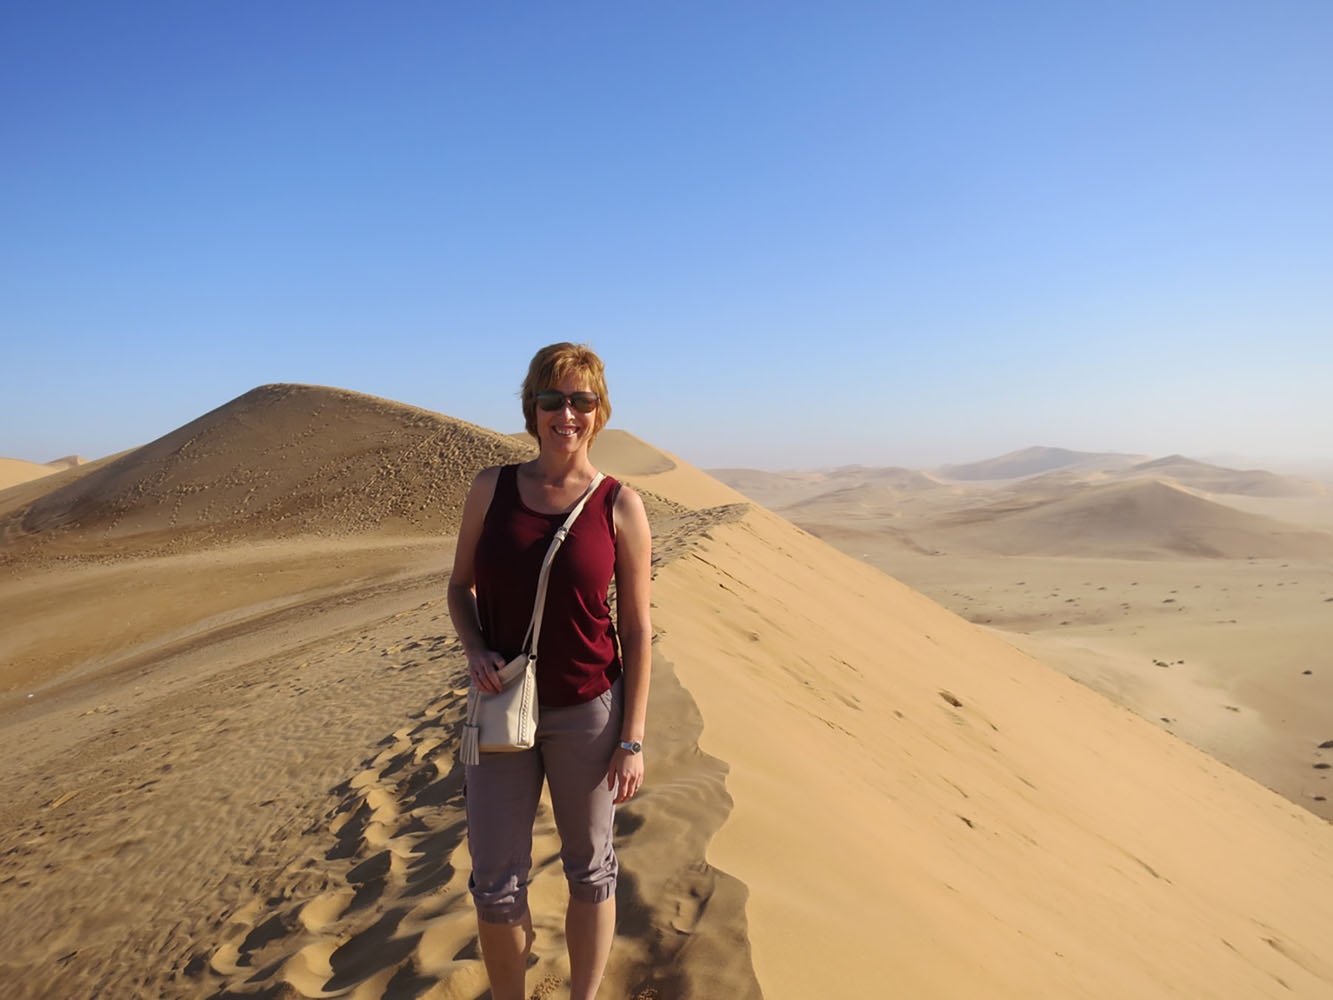 Liesl standing in the desert in Namibia.